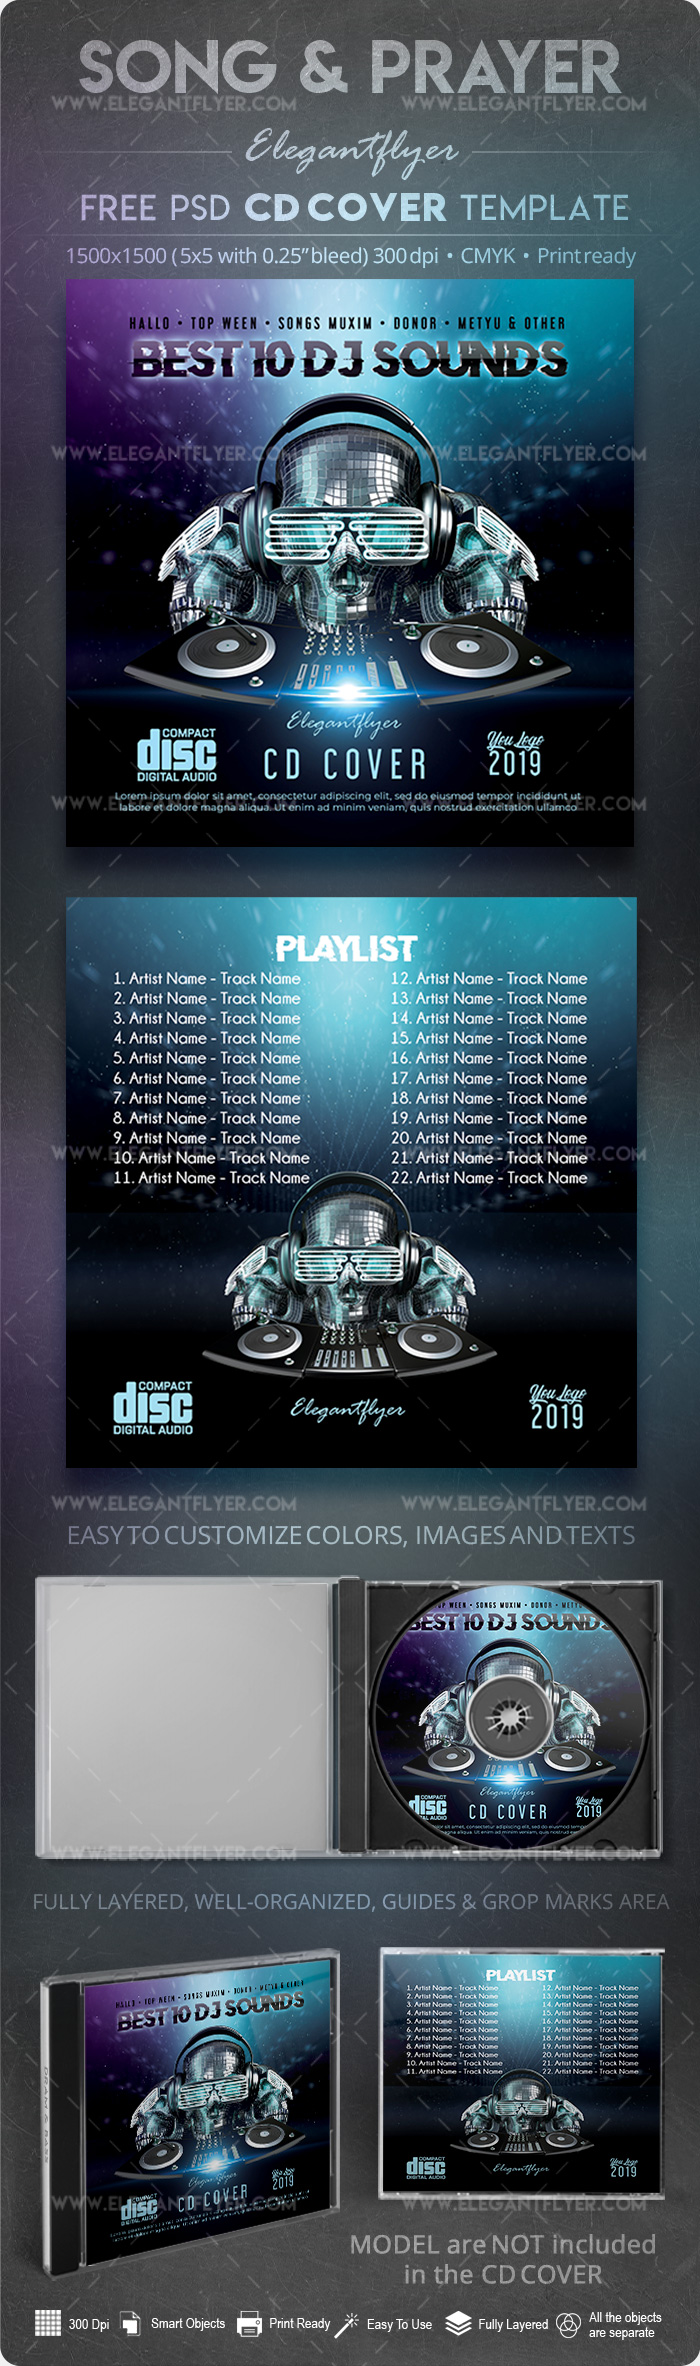 Best 10 DJ Sounds – Premium CD Cover PSD Template